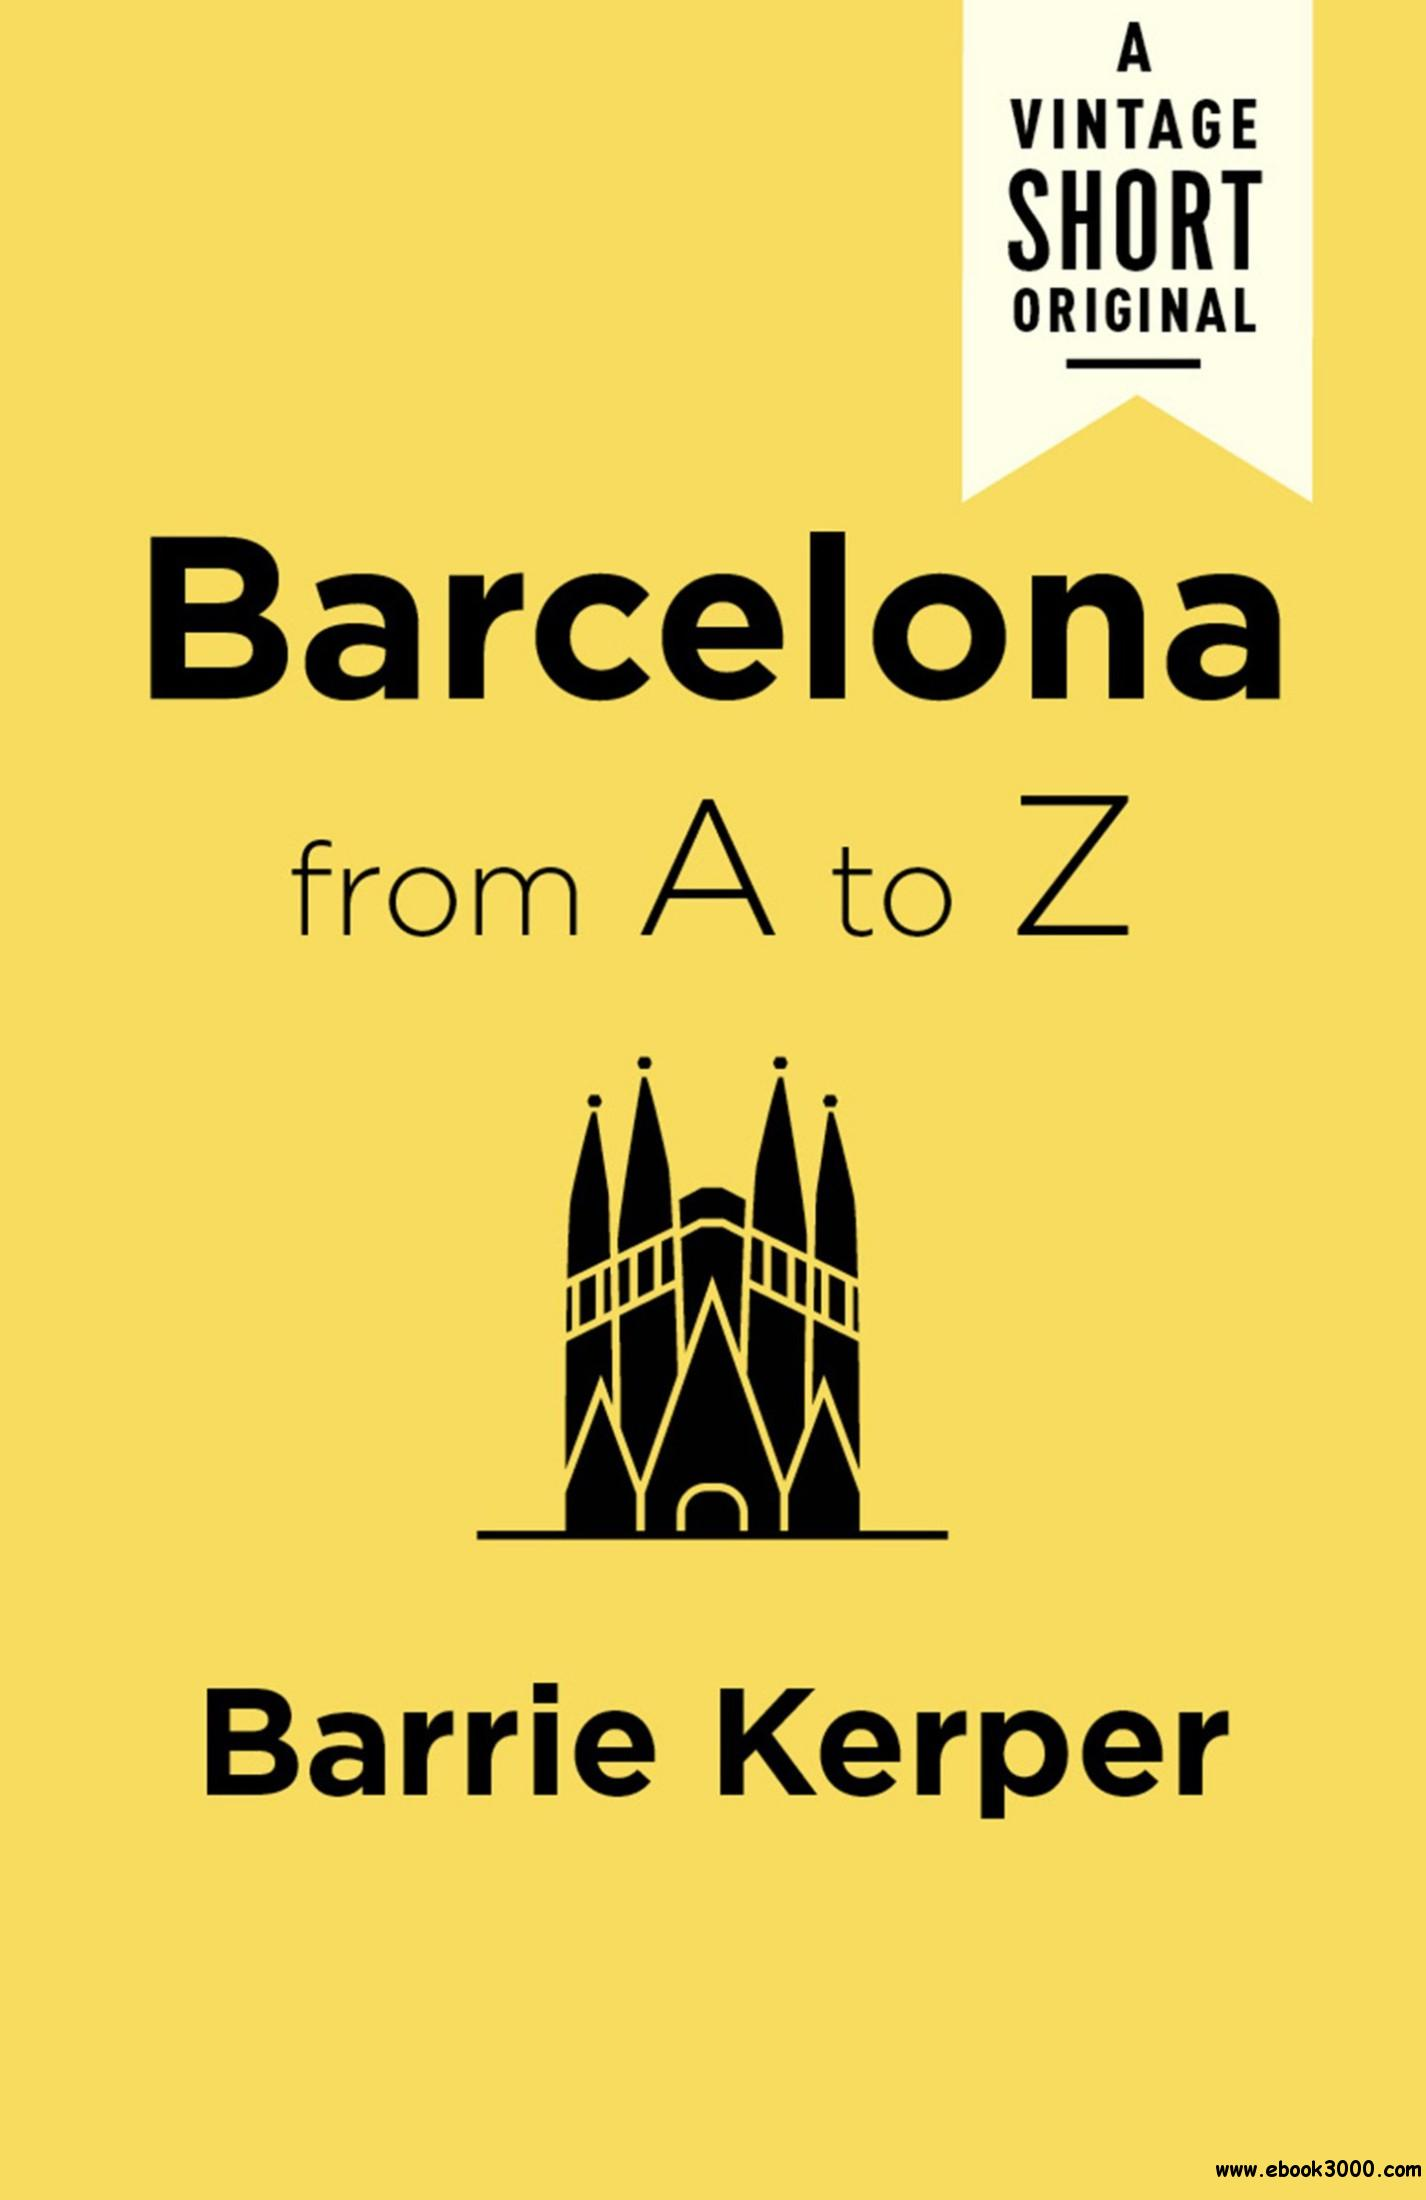 Barcelona from A to Z (A Vintage Short)